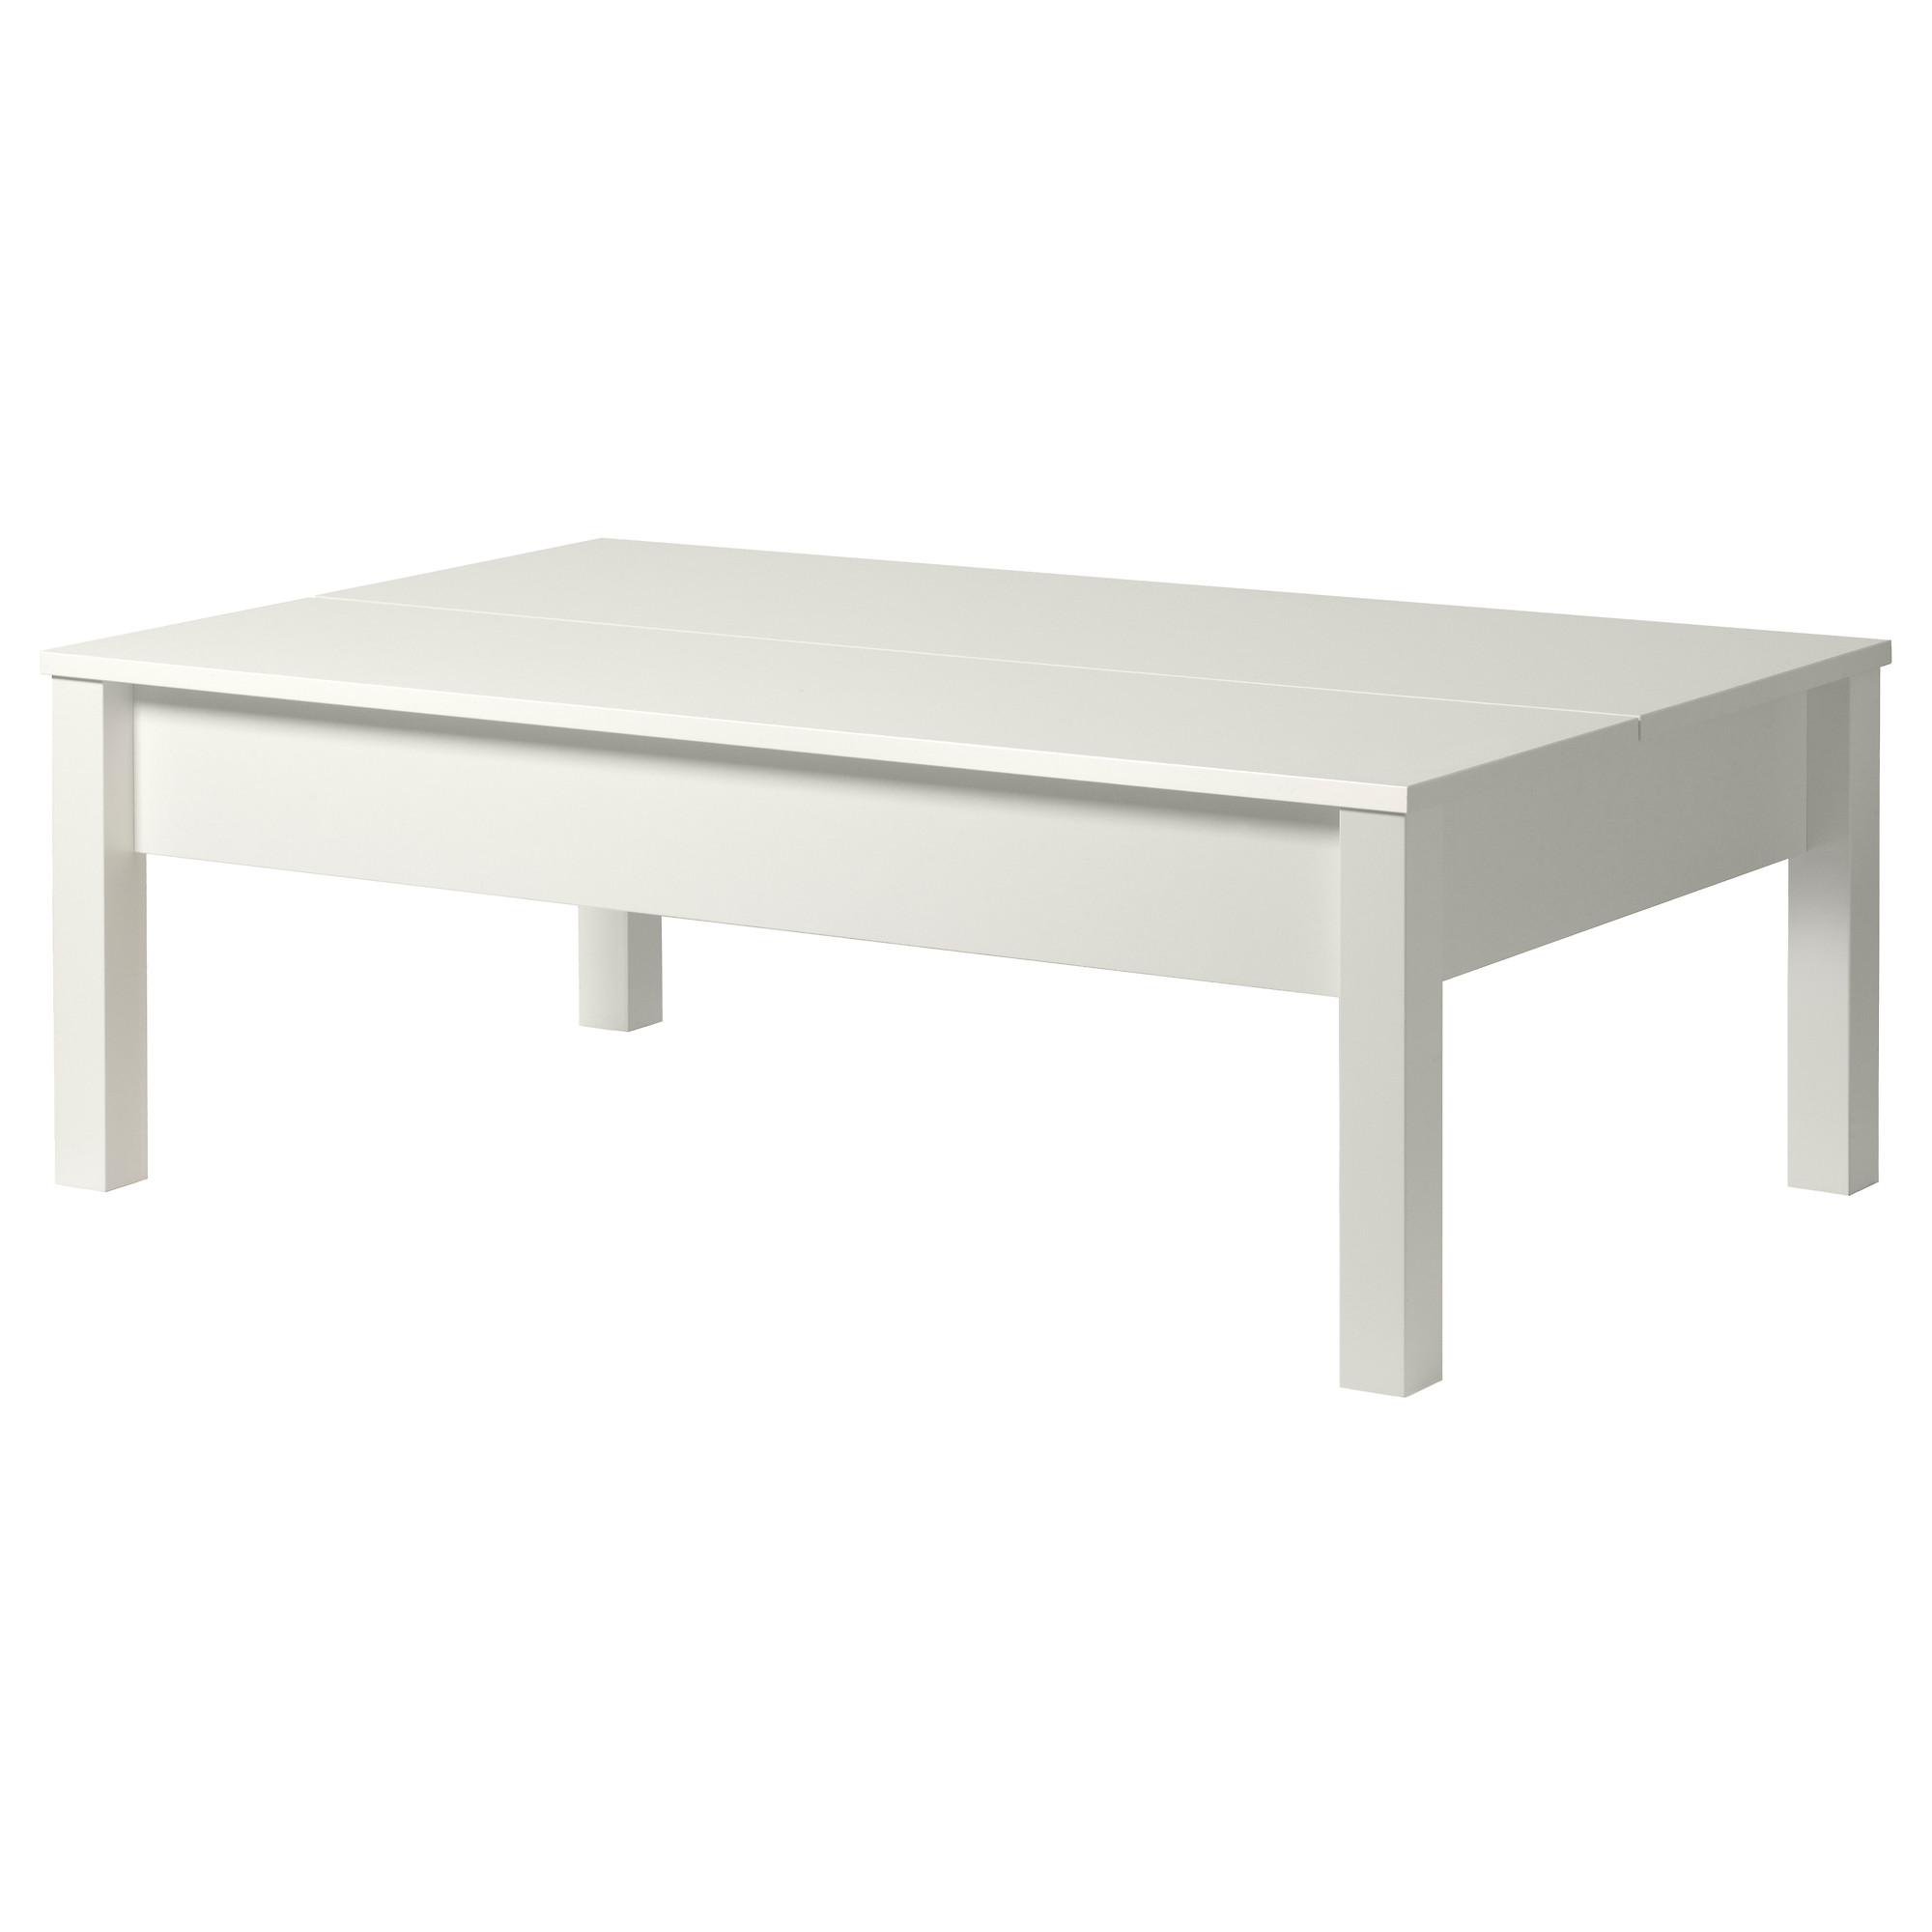 Table basse jardin ikea mobilier design d coration d for Mesa camilla rectangular ikea